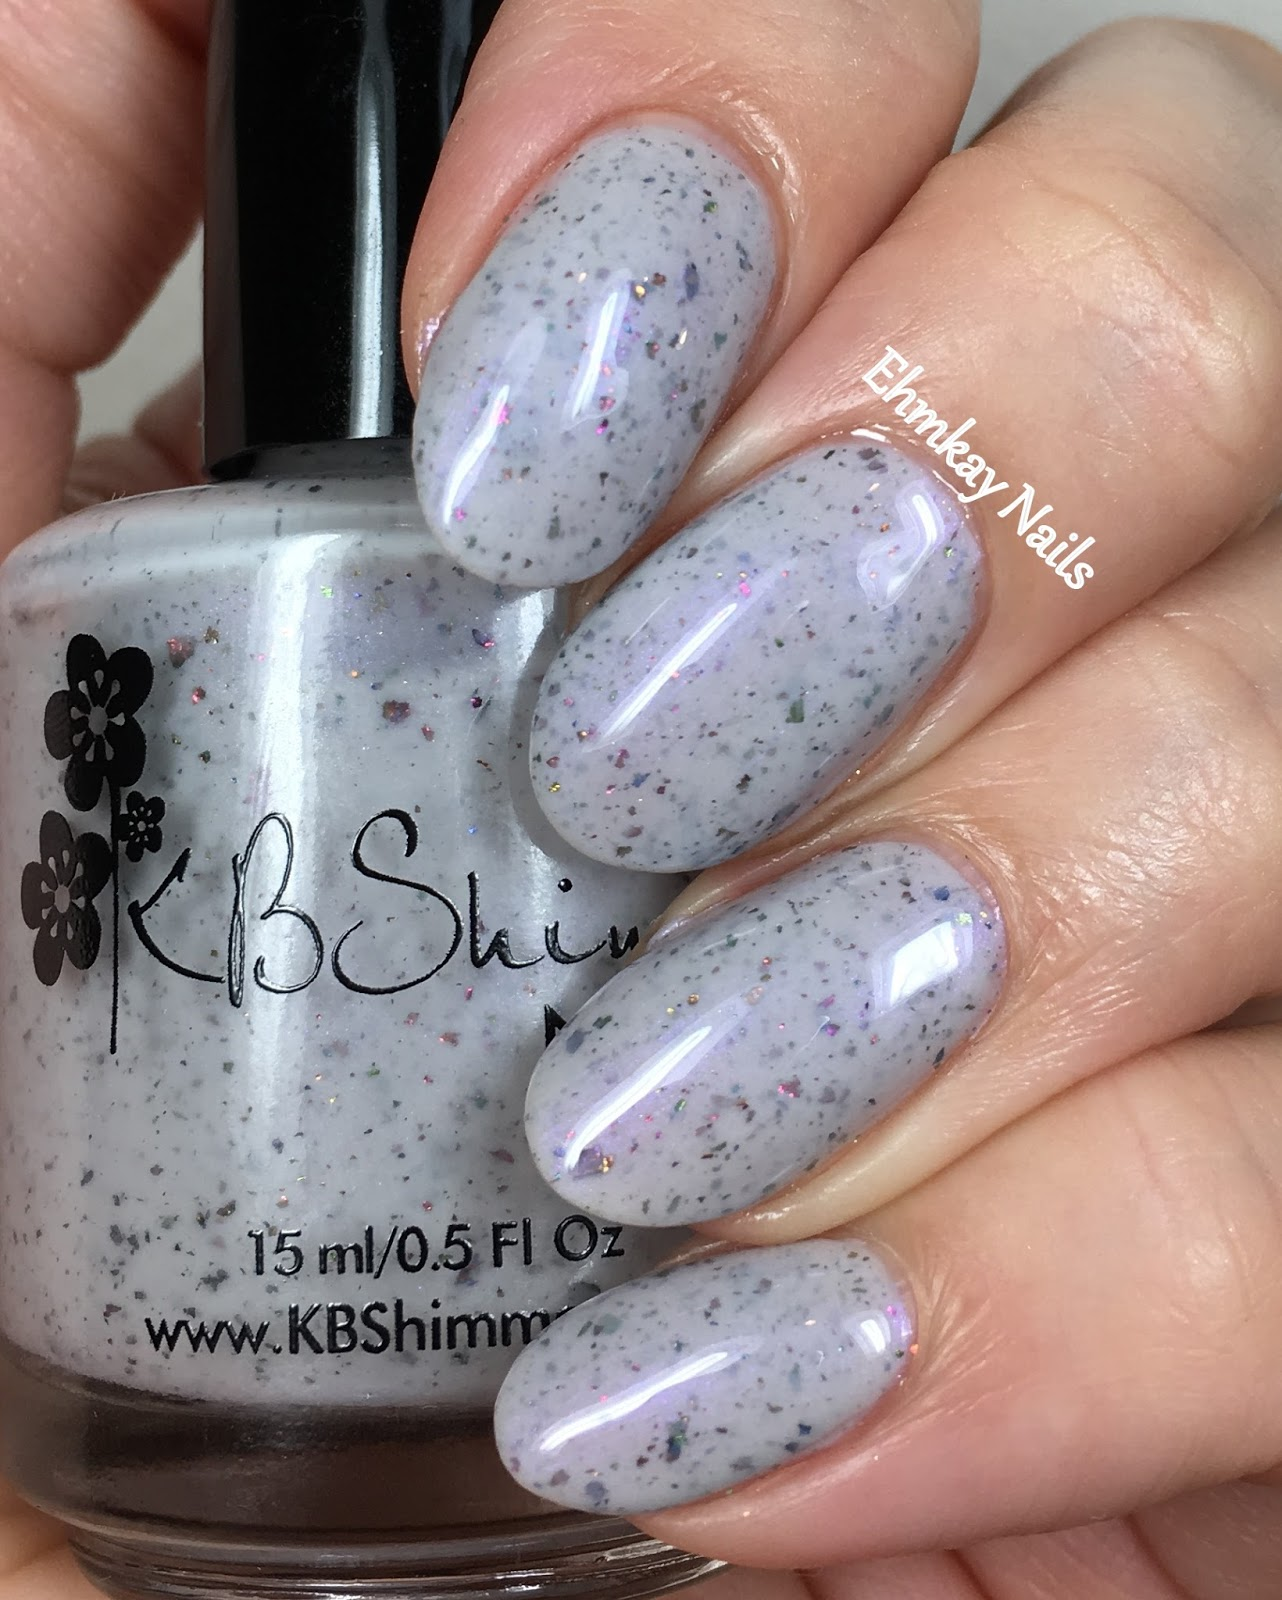 ehmkay nails: KBShimmer Fall 2017 Blogger Collaboration Collection ...